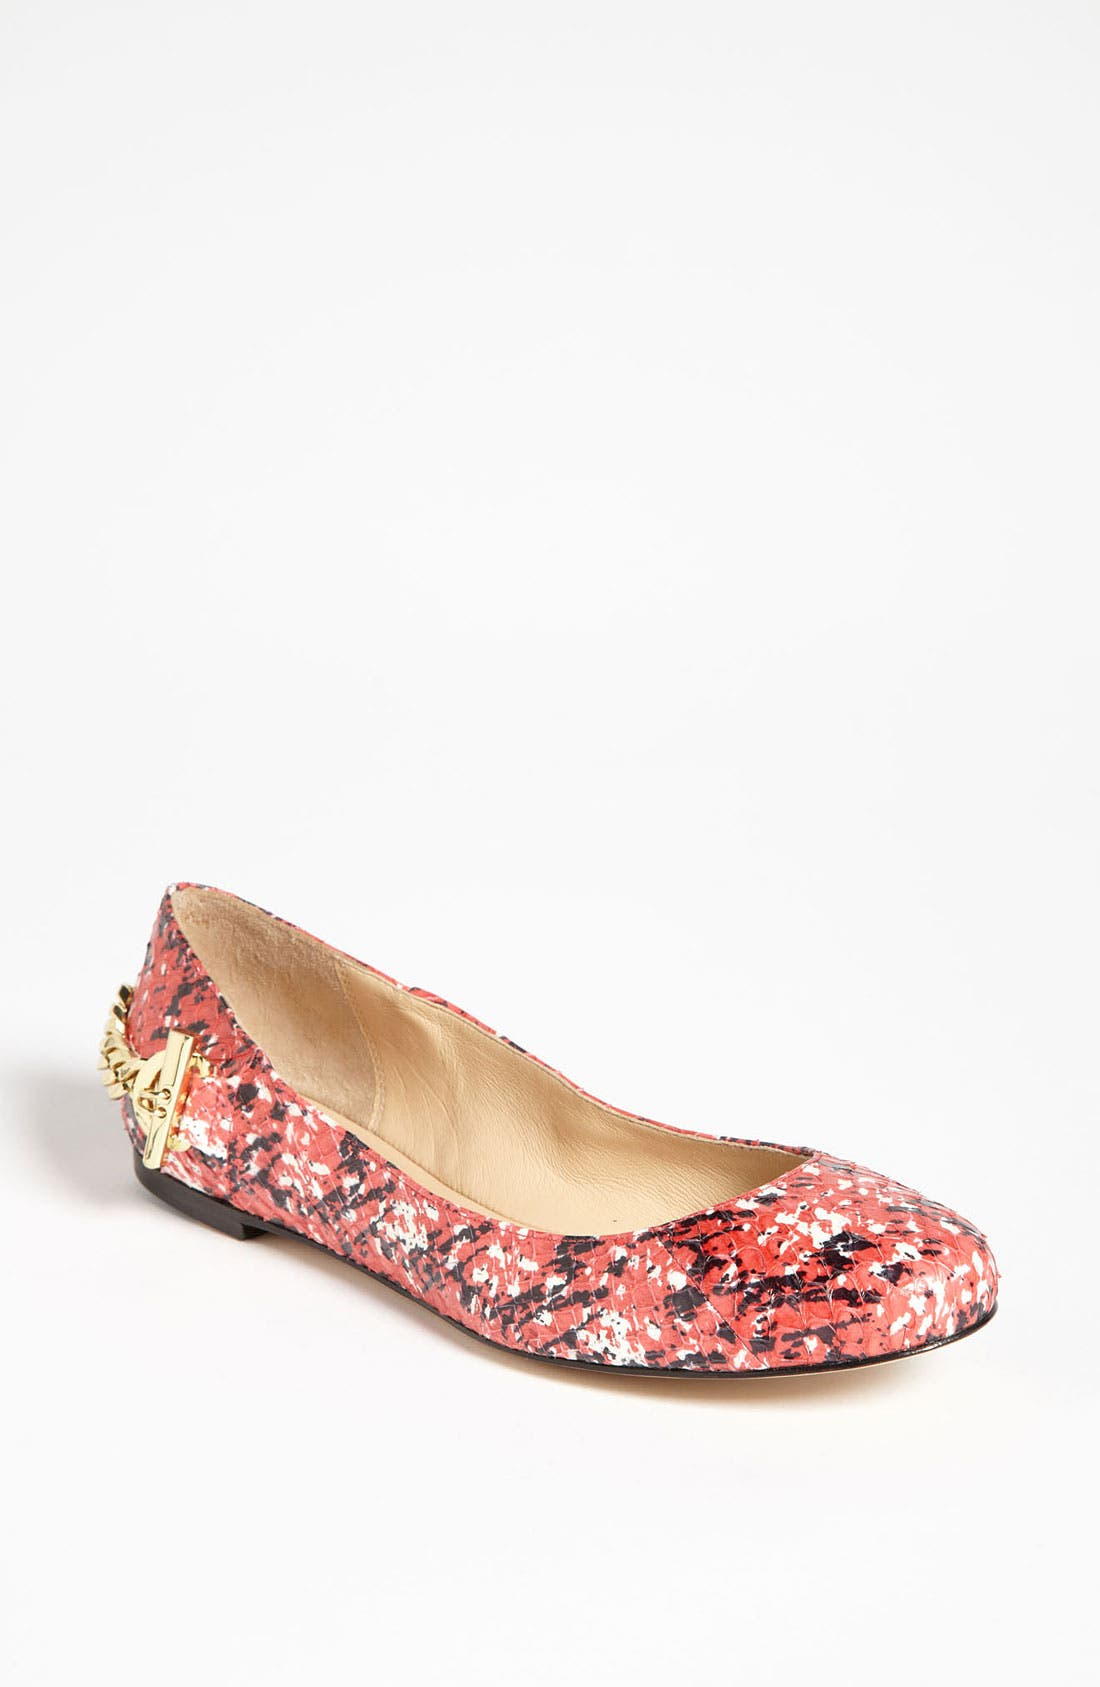 RACHEL ZOE, 'Laura' Flat, Main thumbnail 1, color, 600